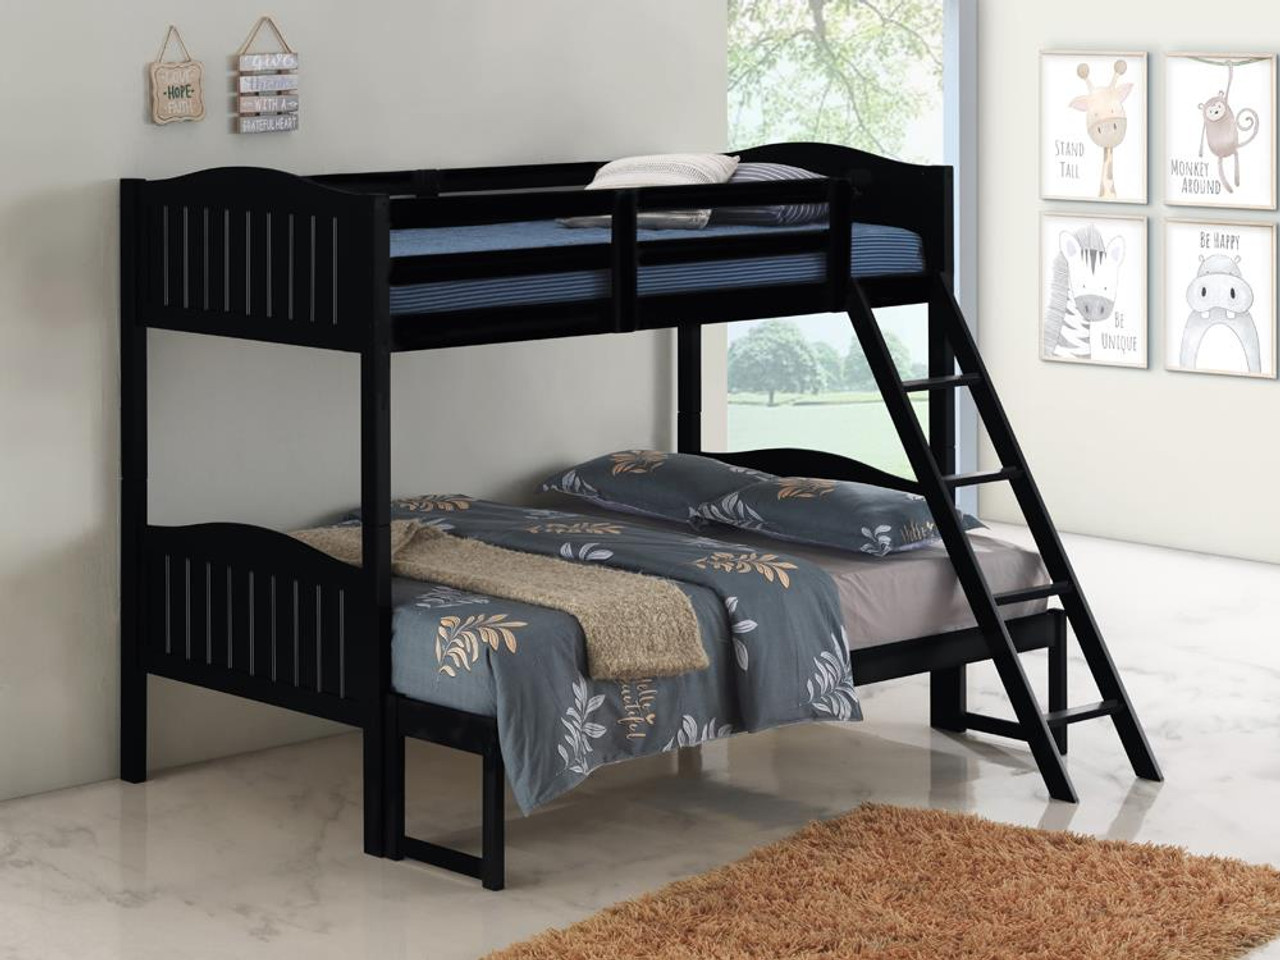 Littleton Bunk Bed Littleton Twin Full Bunk Bed With Ladder Black 405054blk On Sale At Montana S Home Furniture Serving Houston Tx